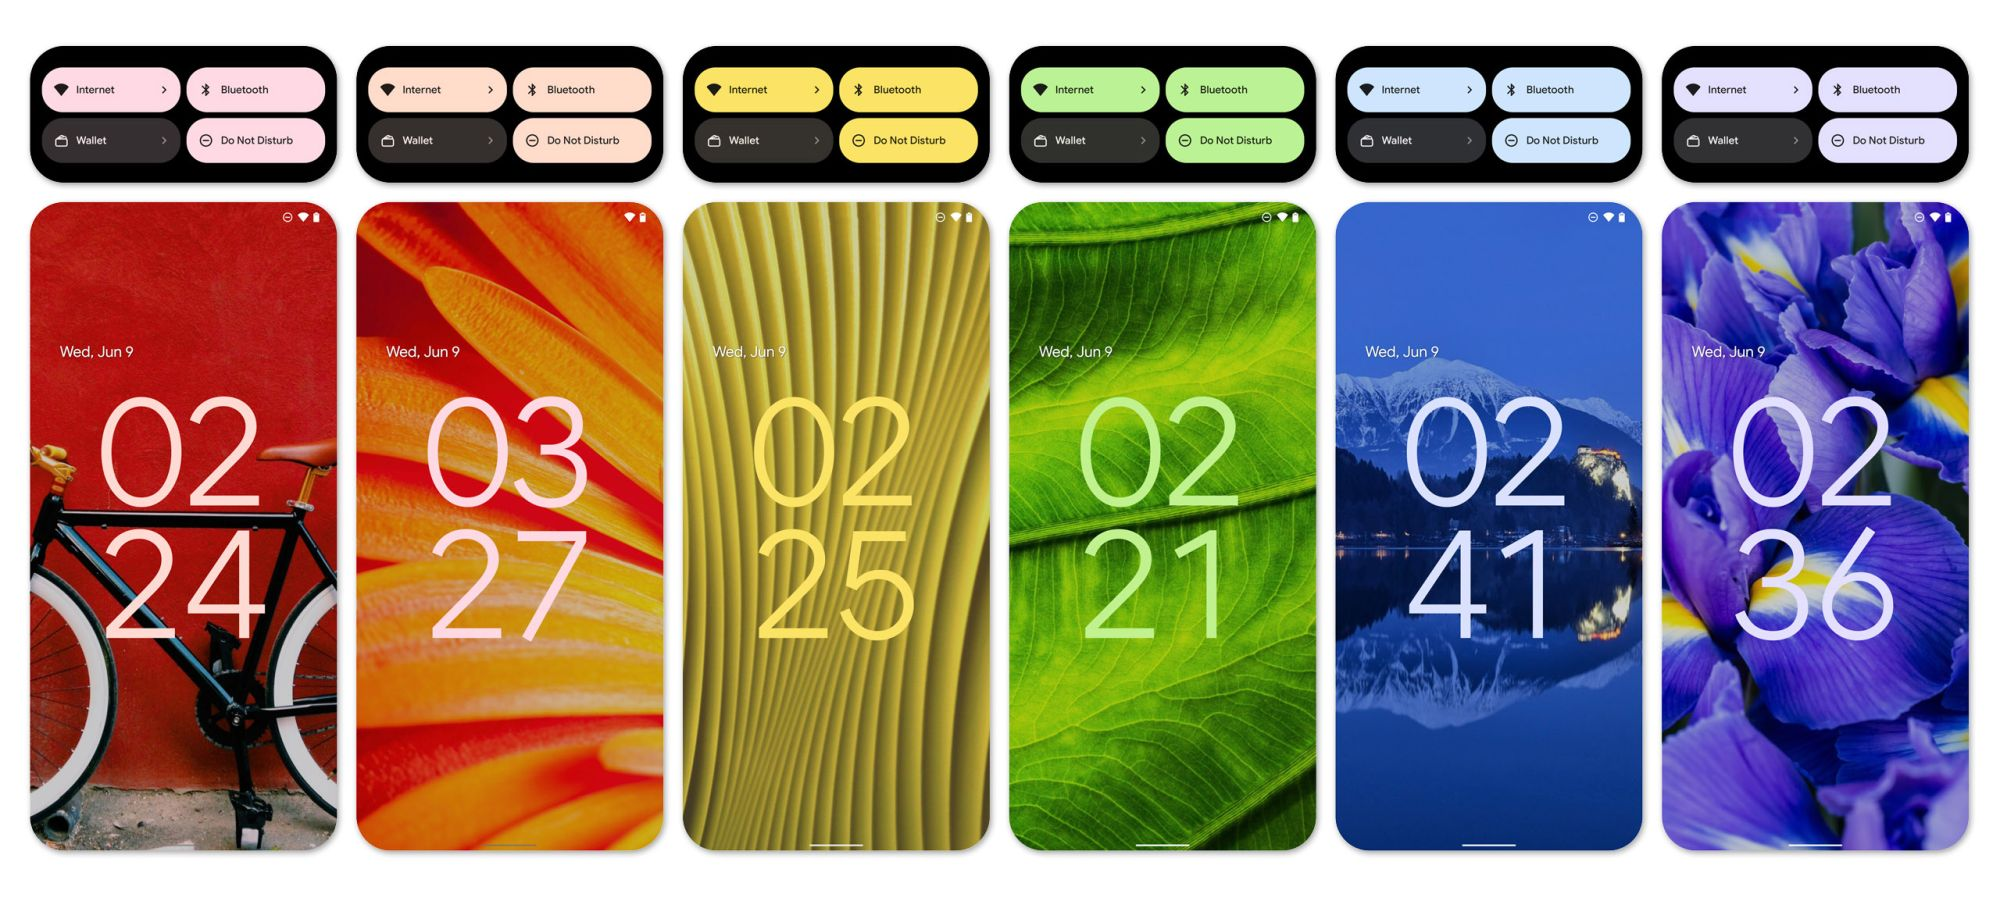 android 12 theme engine farben